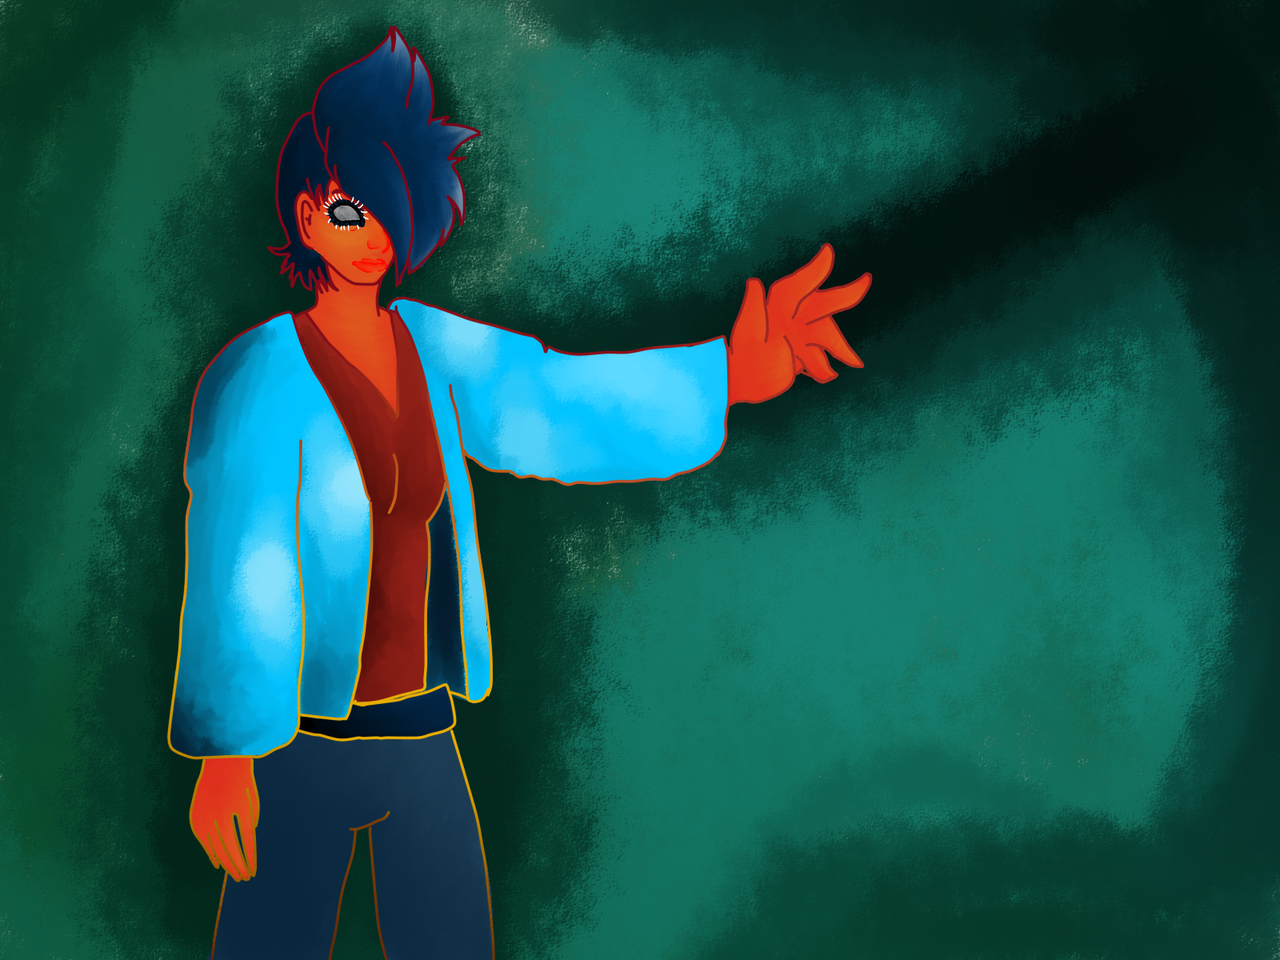 I did a thing actually it was ment to be like a personified sunset so yea there ya go